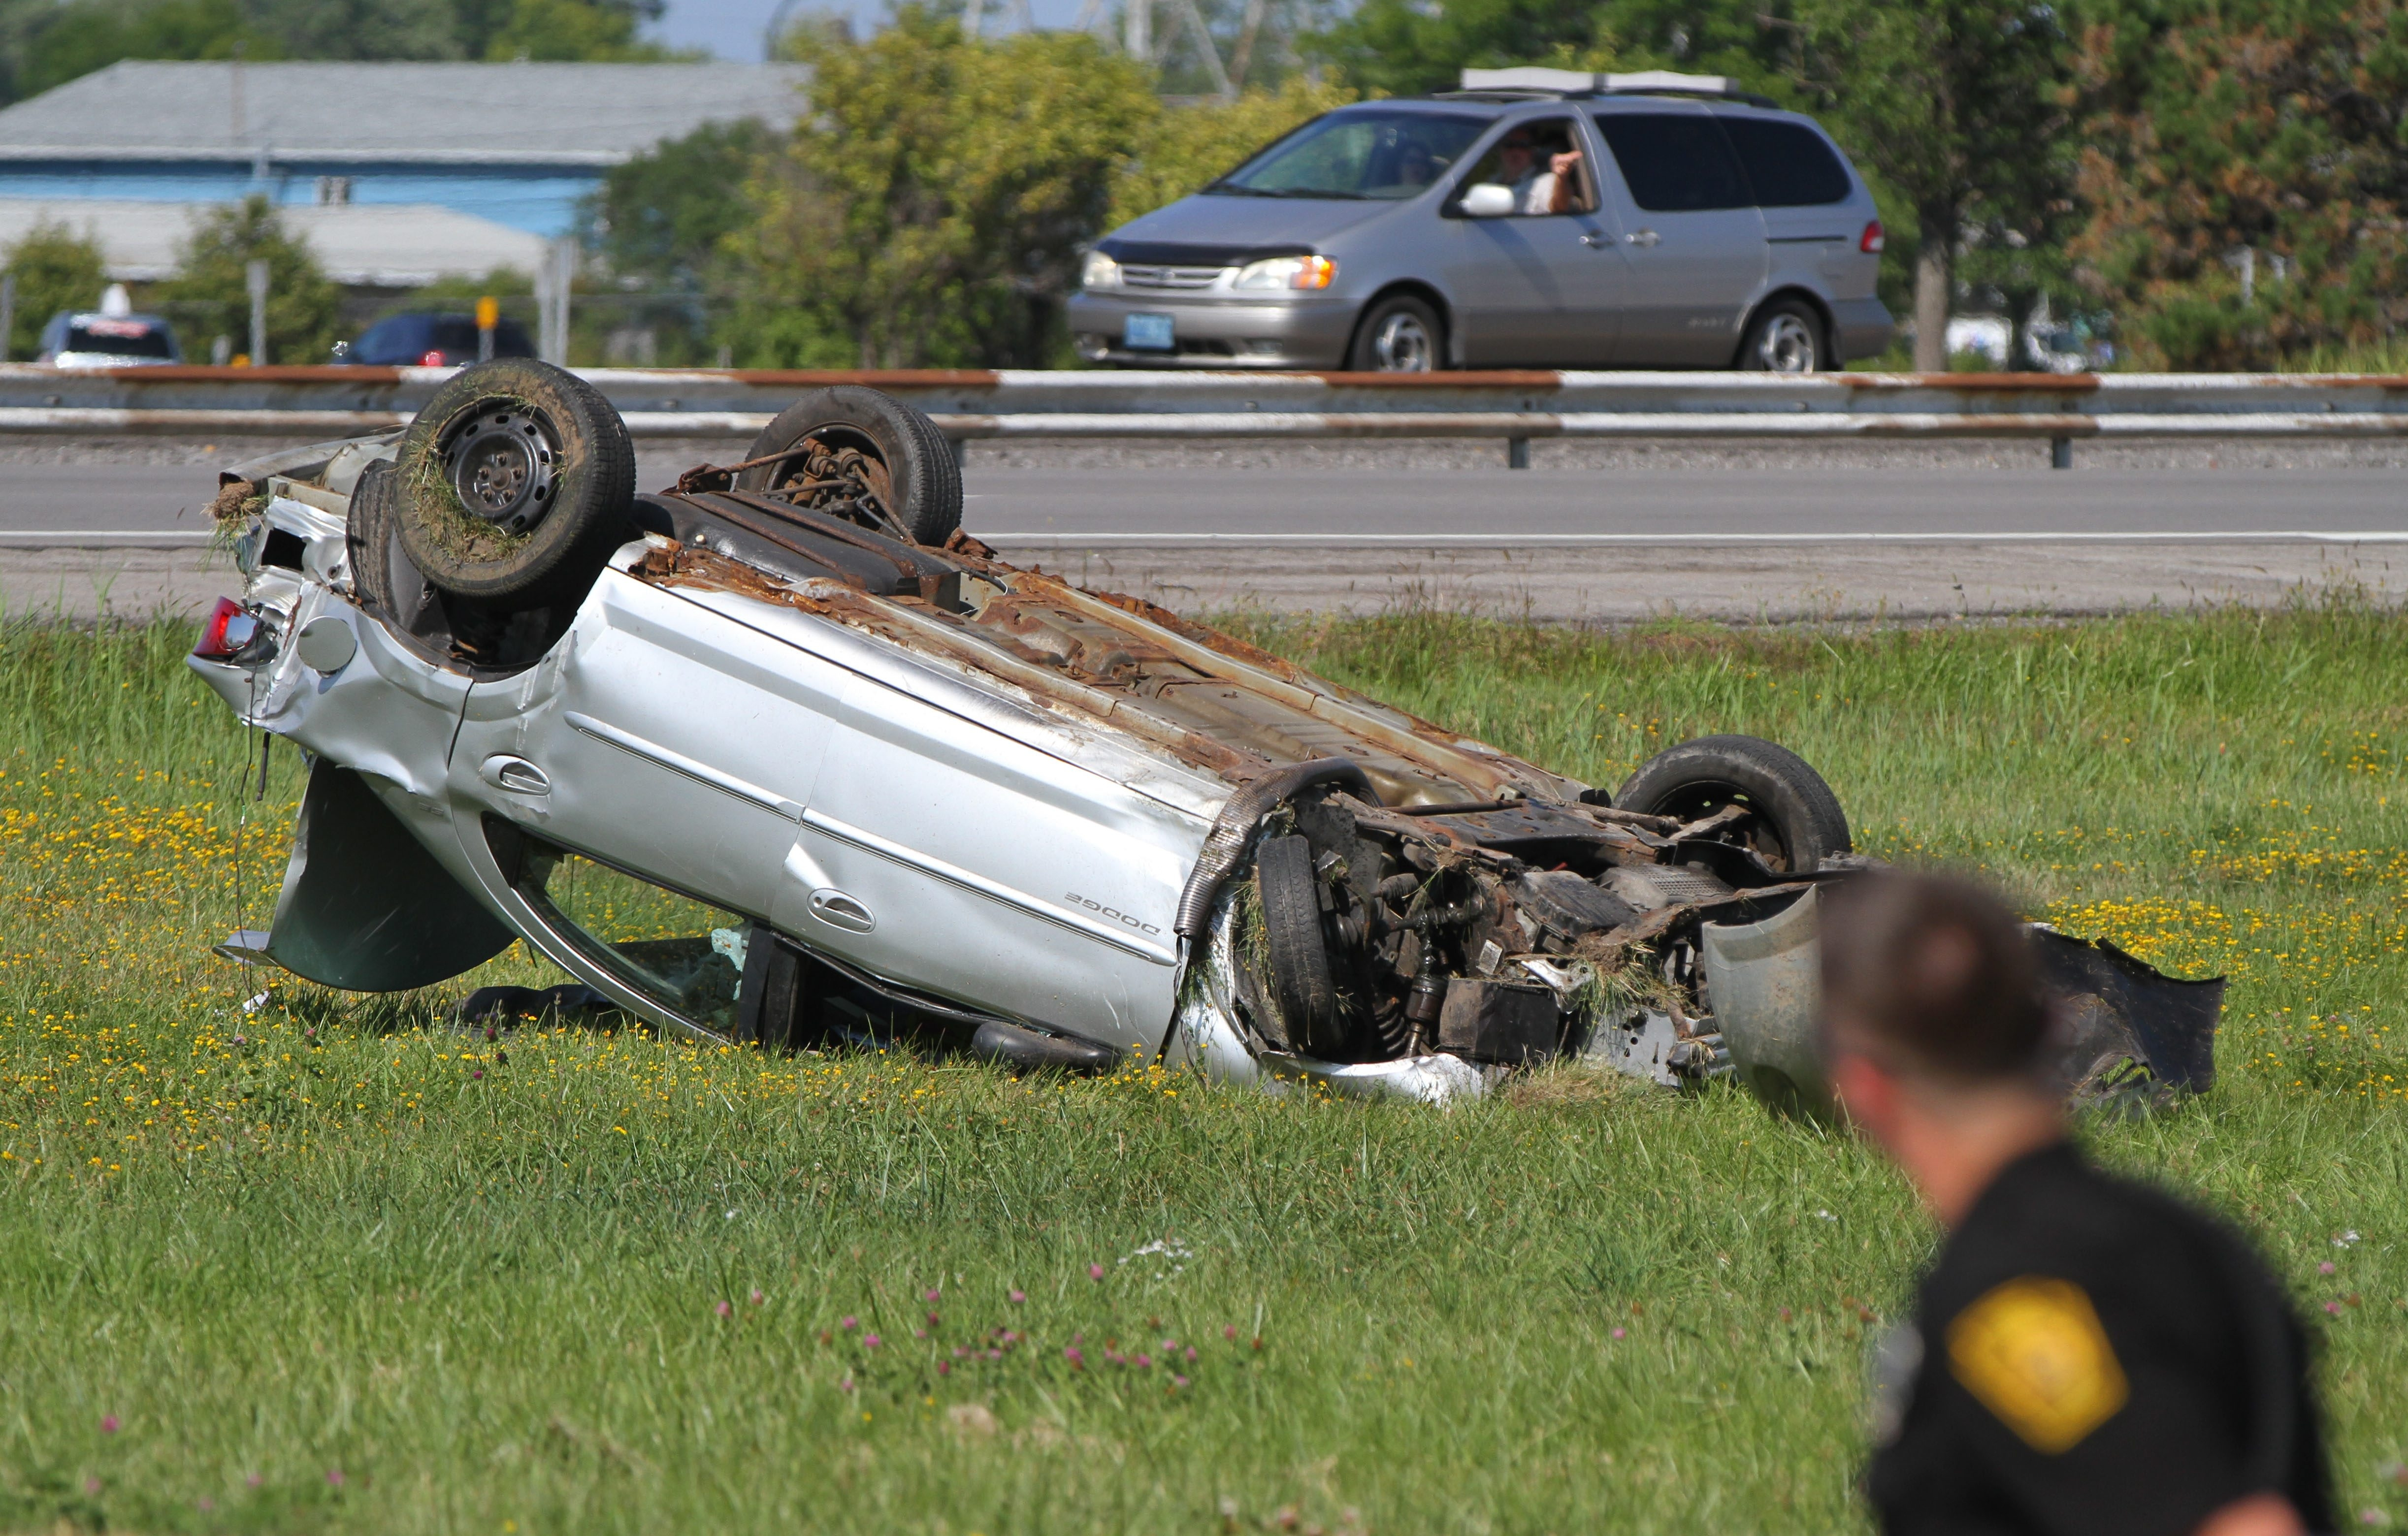 A man was killed in a rollover crash Tuesday afternoon on the Youngmann Memorial Highway's eastbound lanes east of the Elmwood Avenue exit, closing the highway for more than two hours.